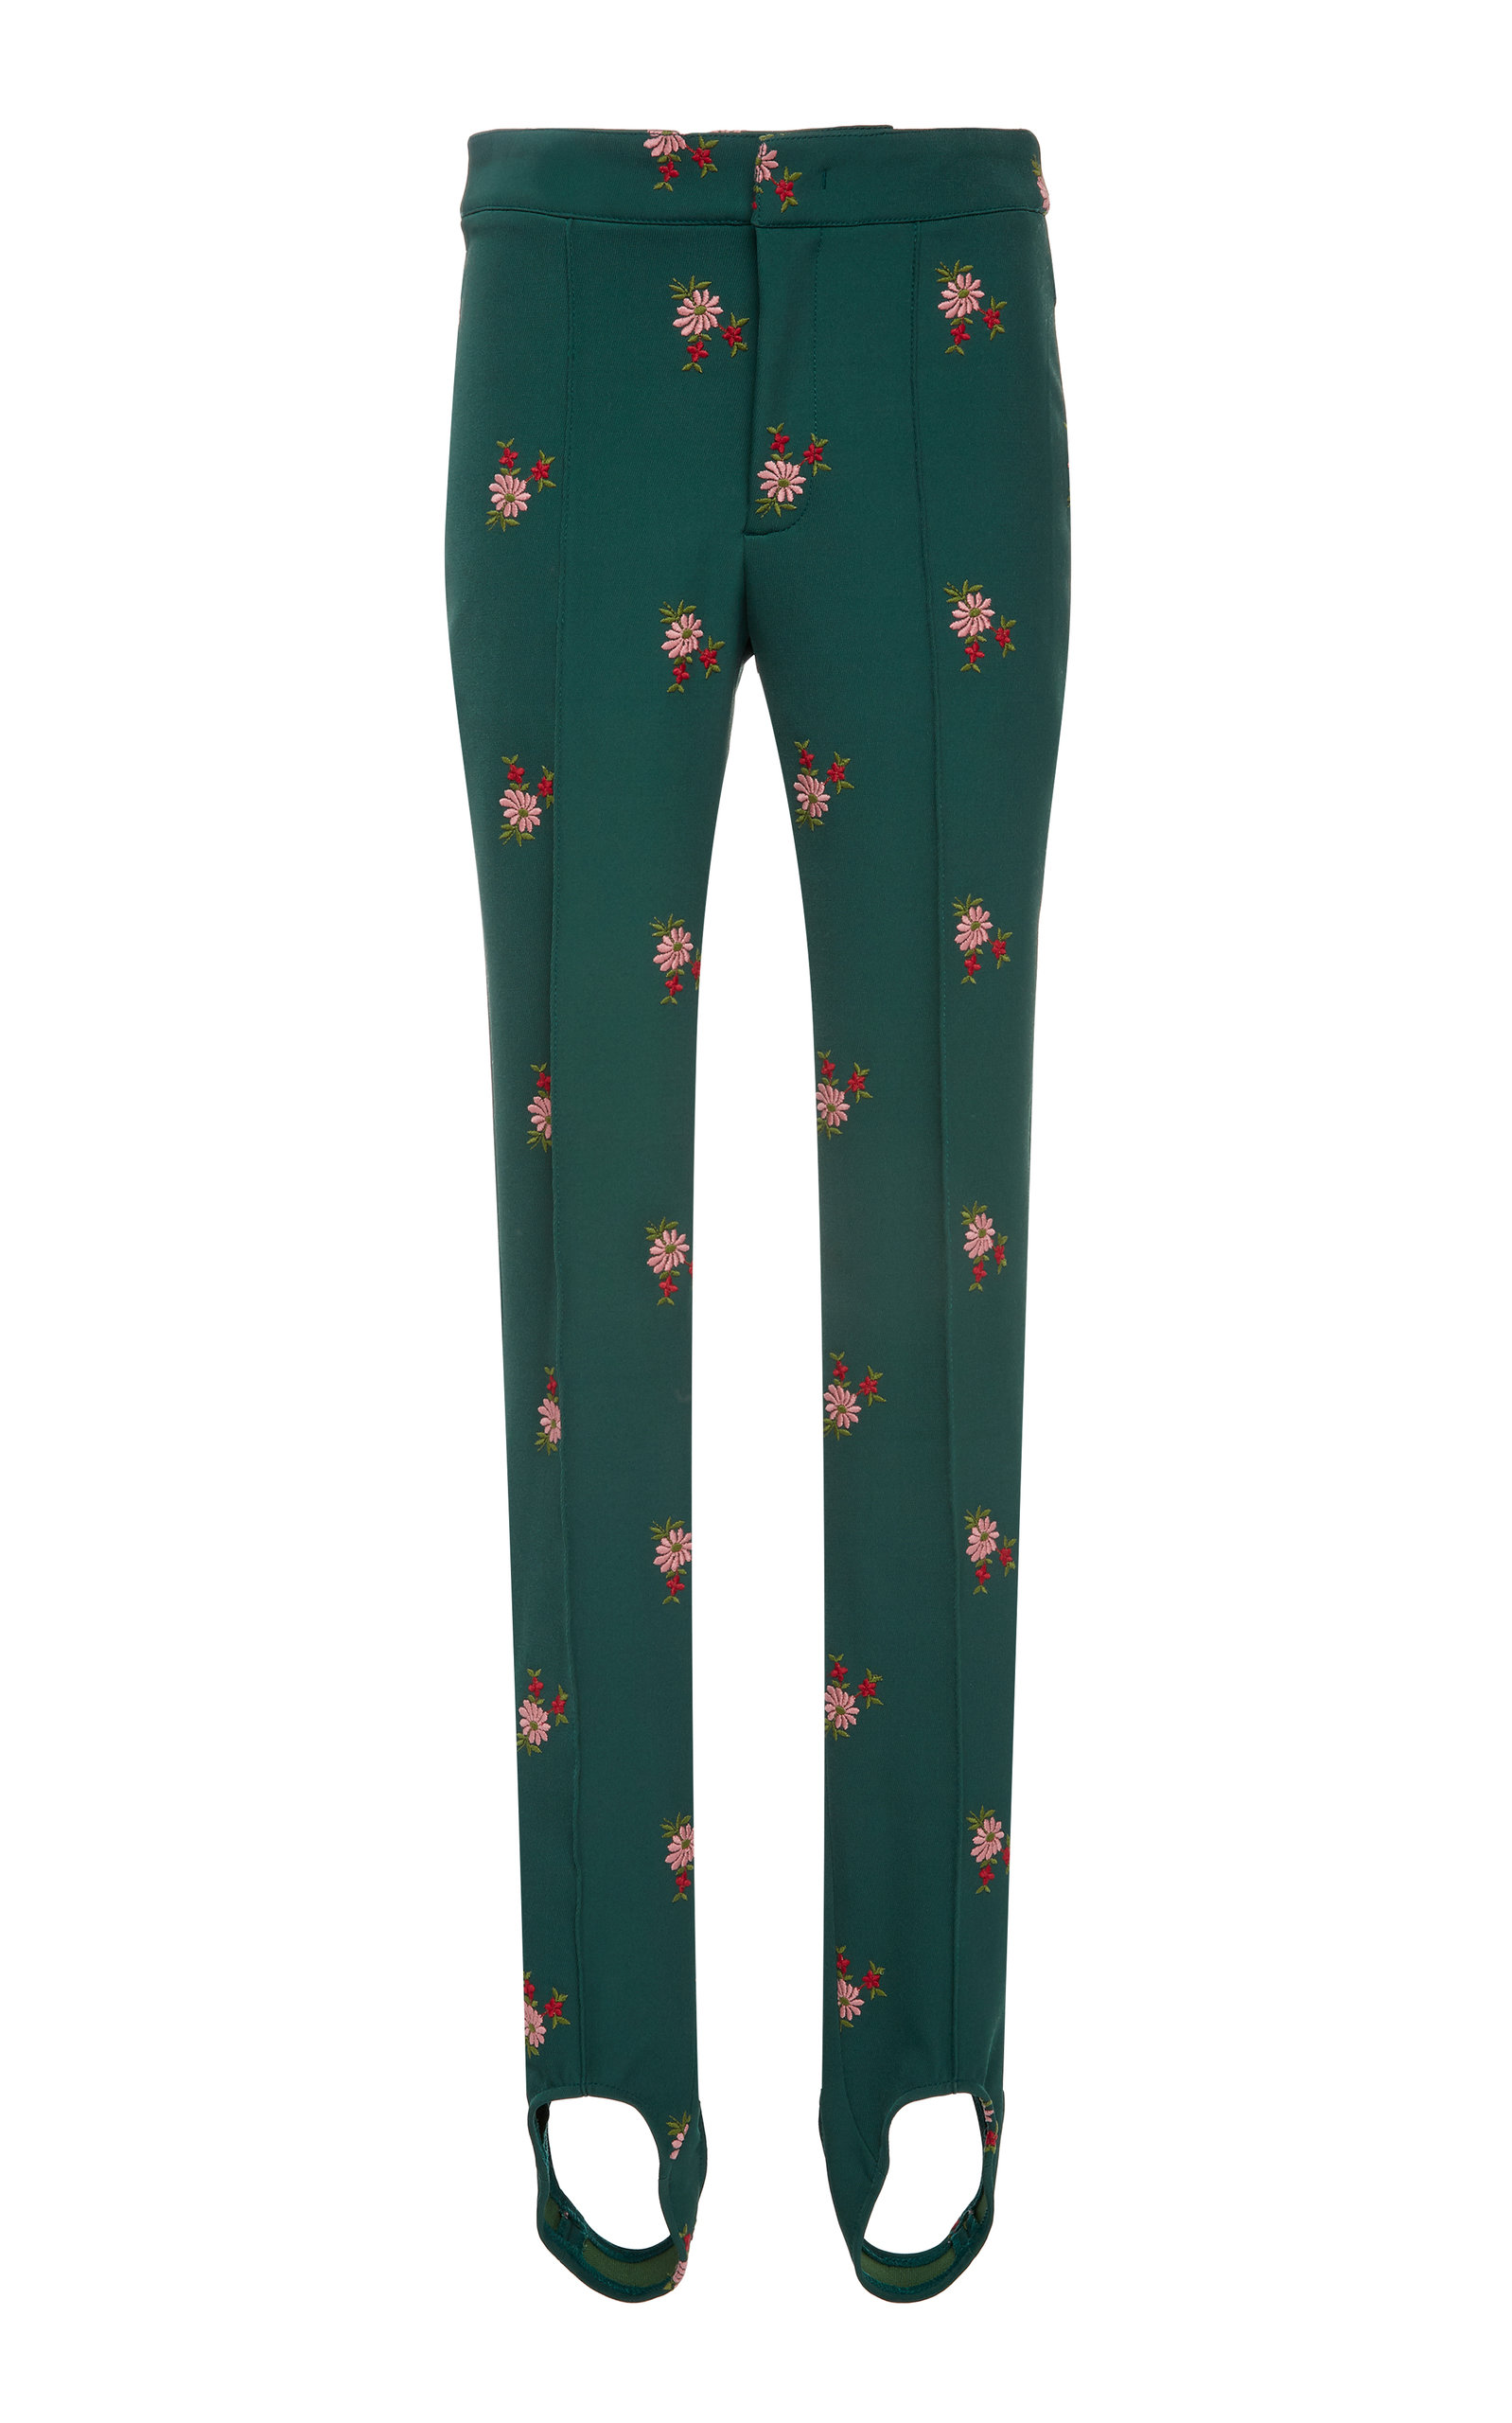 b982e424fa Moncler GeniusFloral-Embroidered Stretch-Twill Stirrup Ski Pants. CLOSE.  Loading